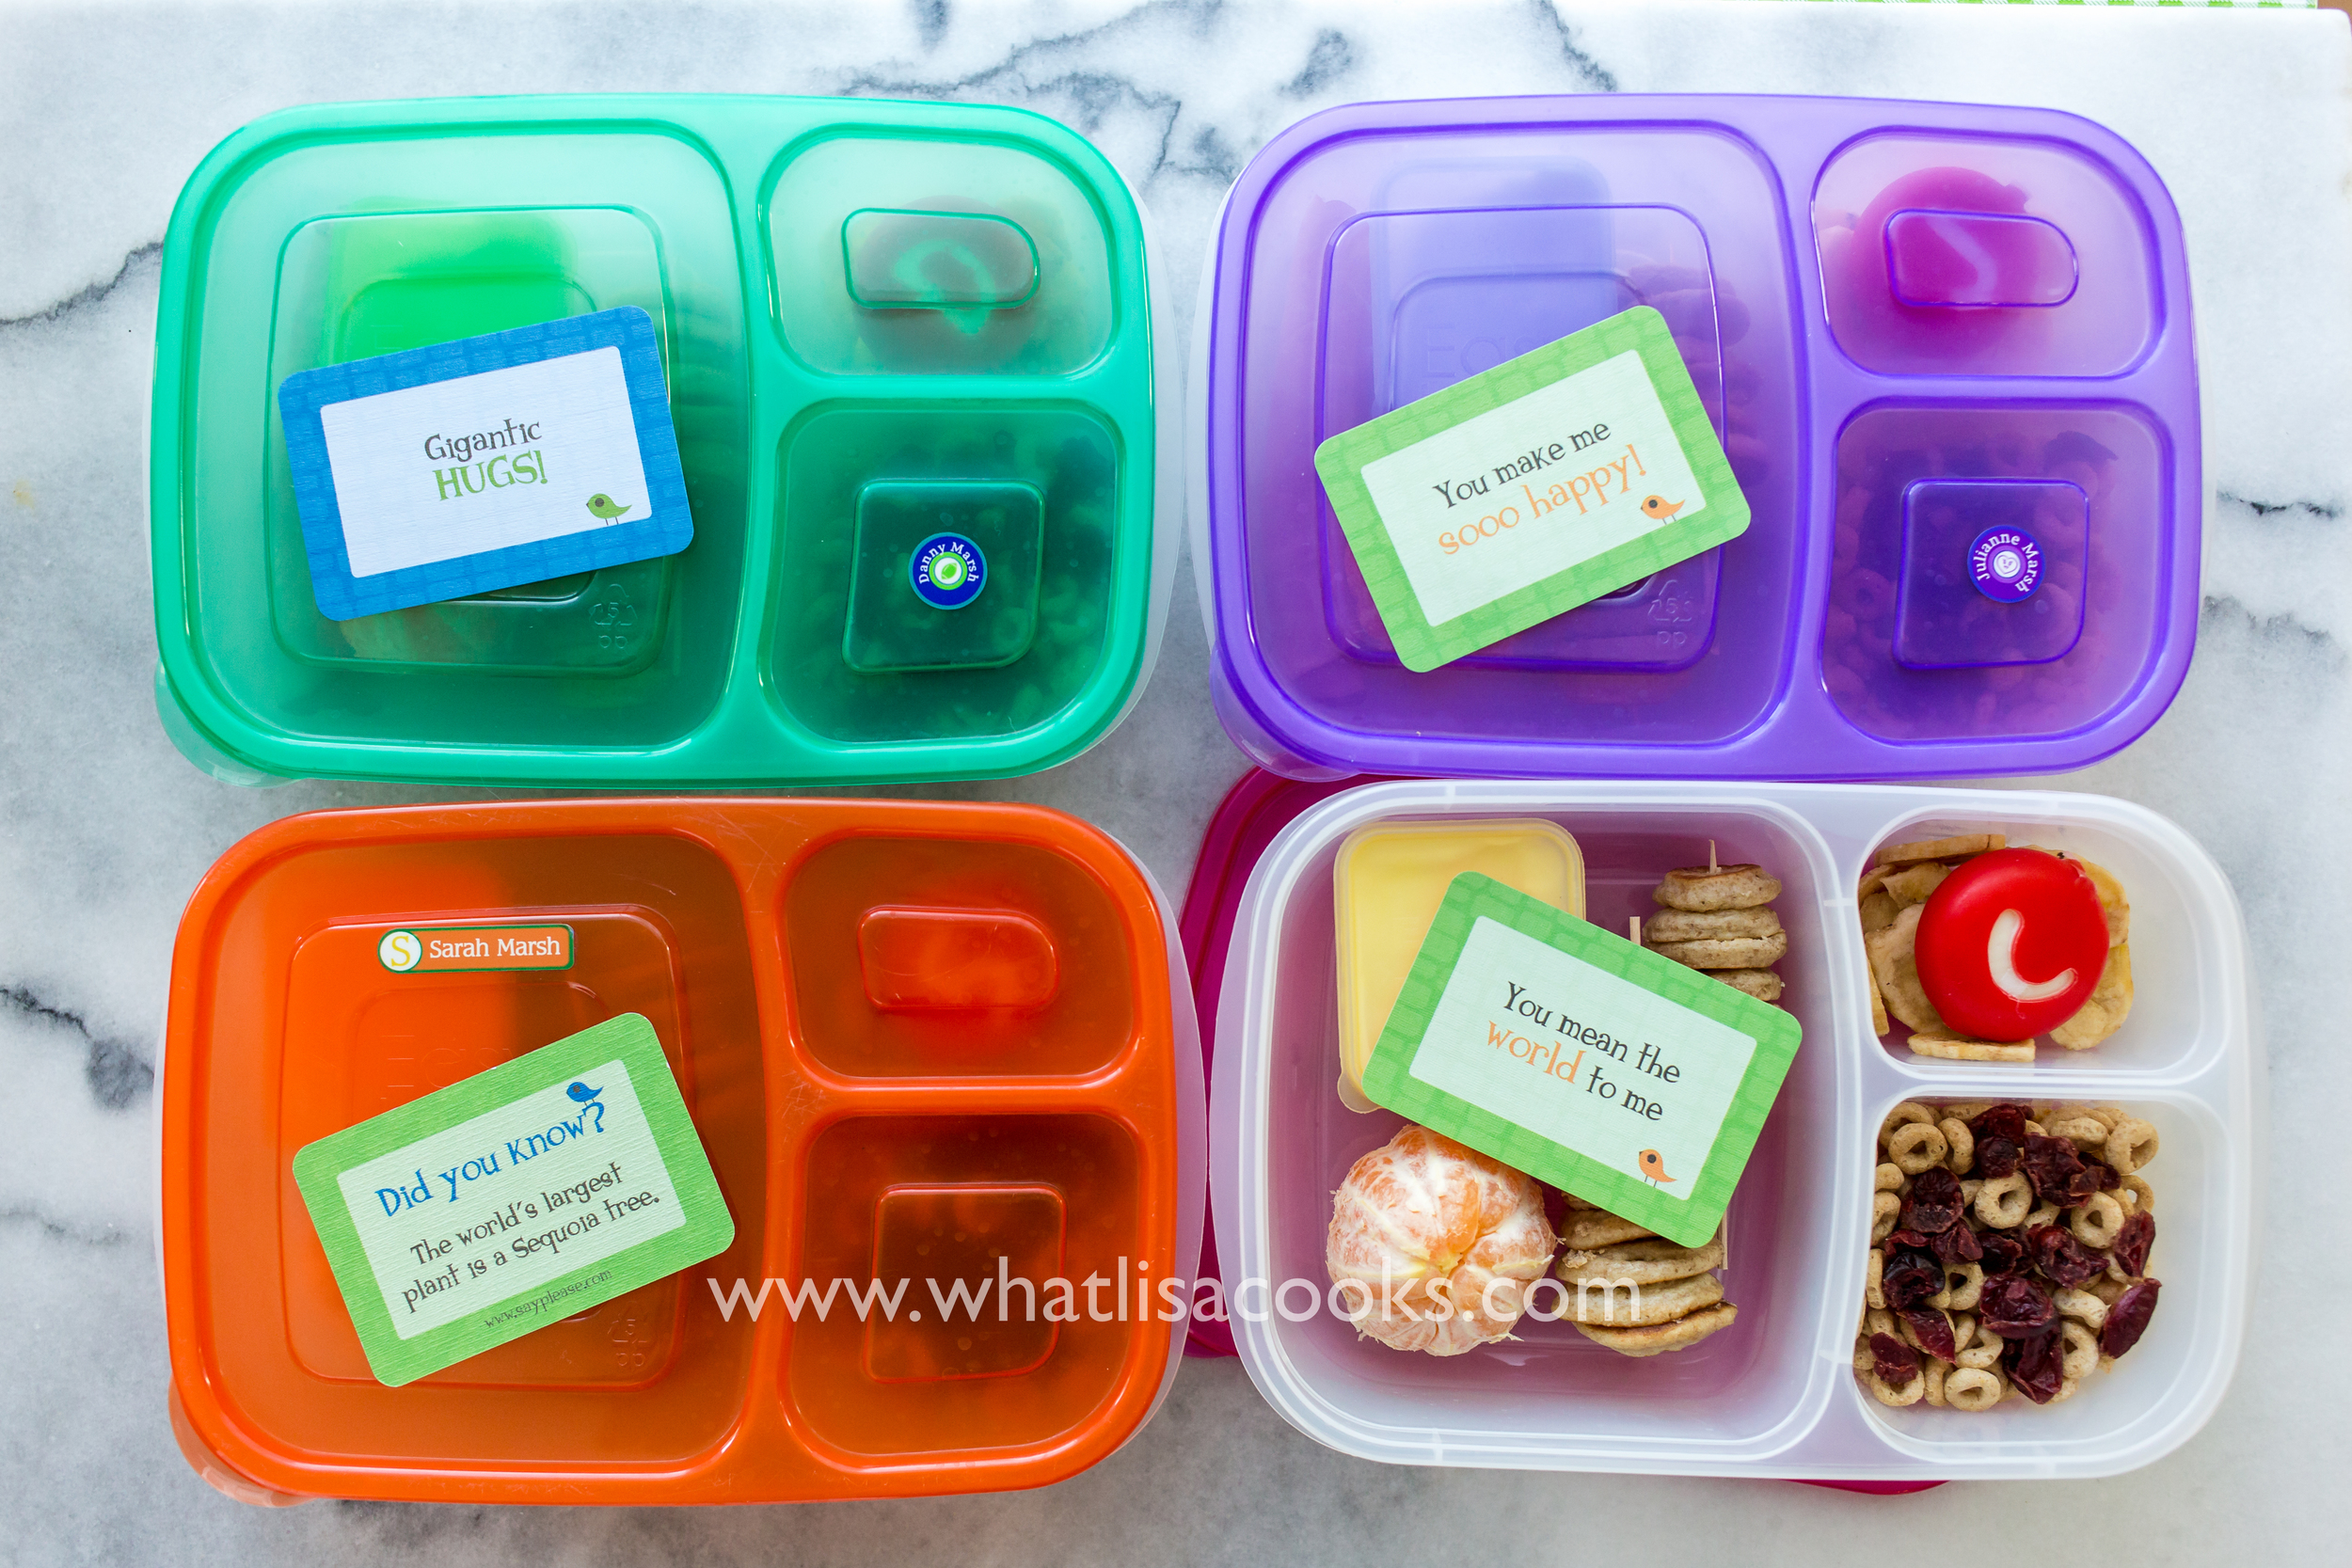 Share the Lunchbox Love - from WhatLisaCooks.com